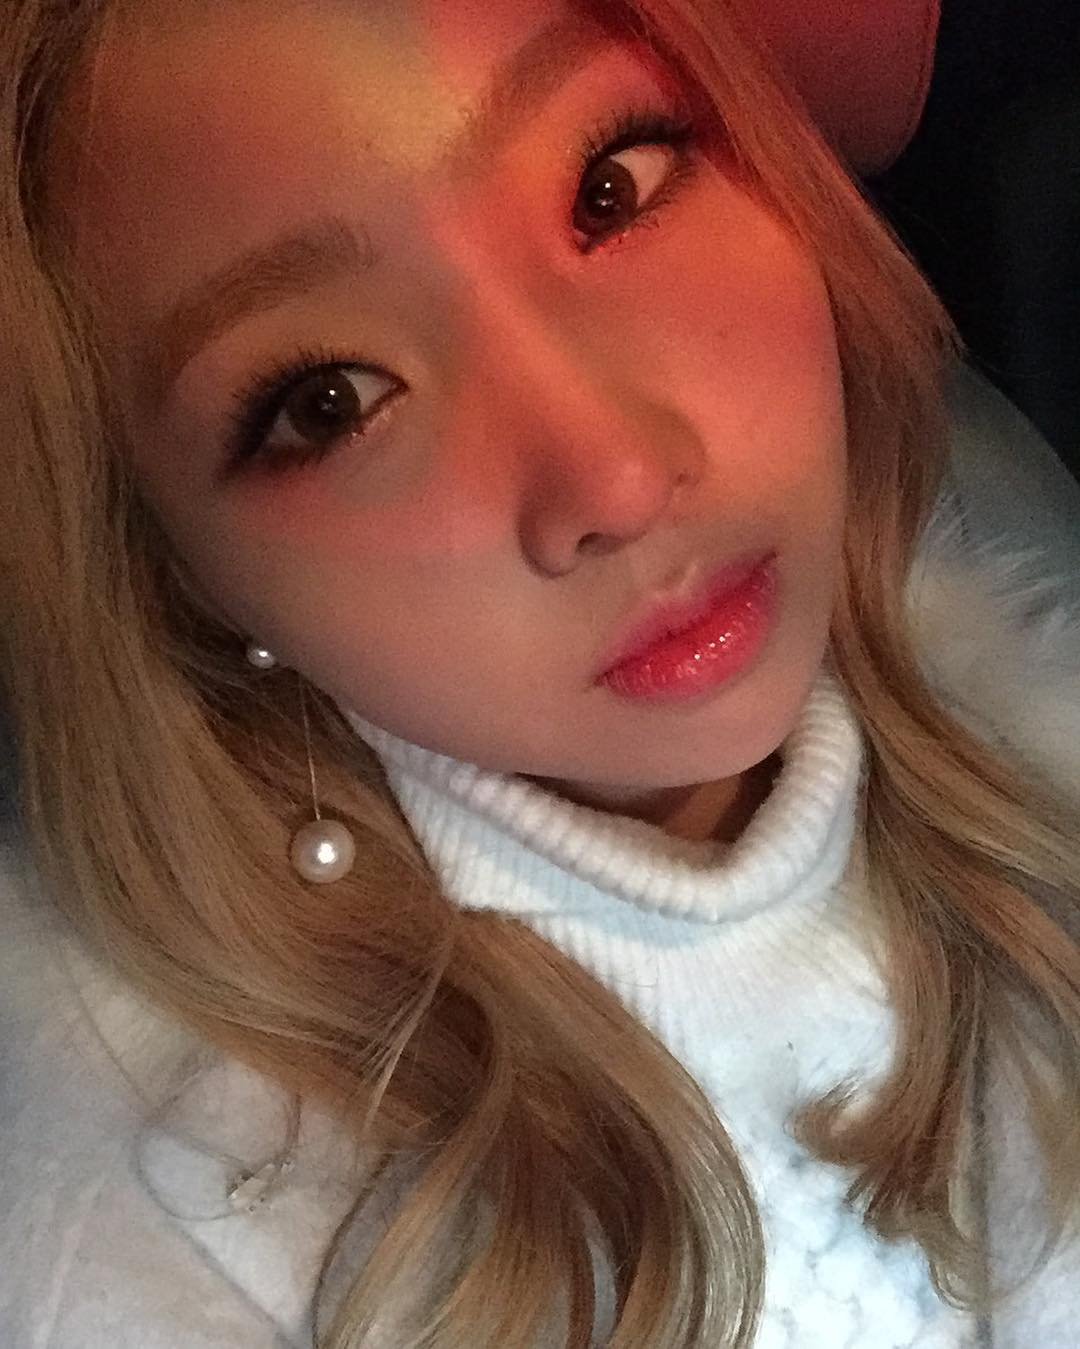 Minzy's keeping her fans up to date with her look too.